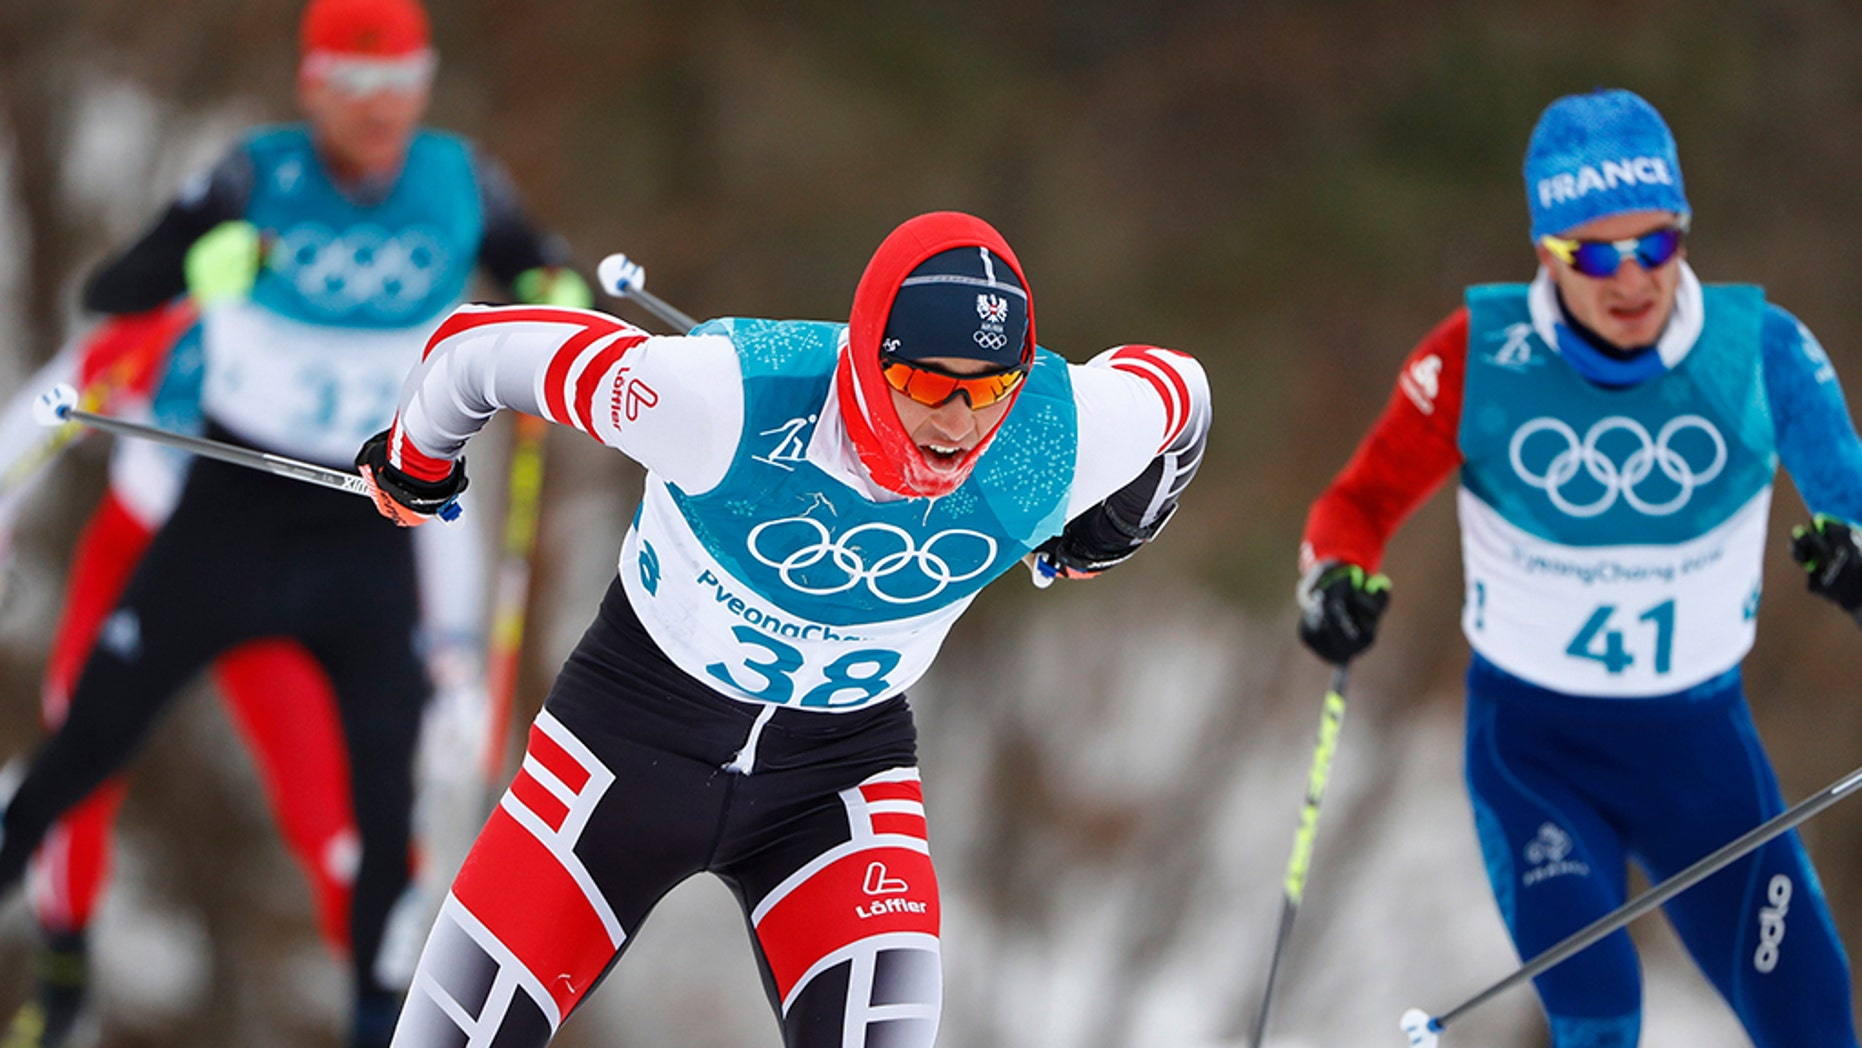 Max Hauke of Austria in action during the 2018 Winter Olympics in South Korea.